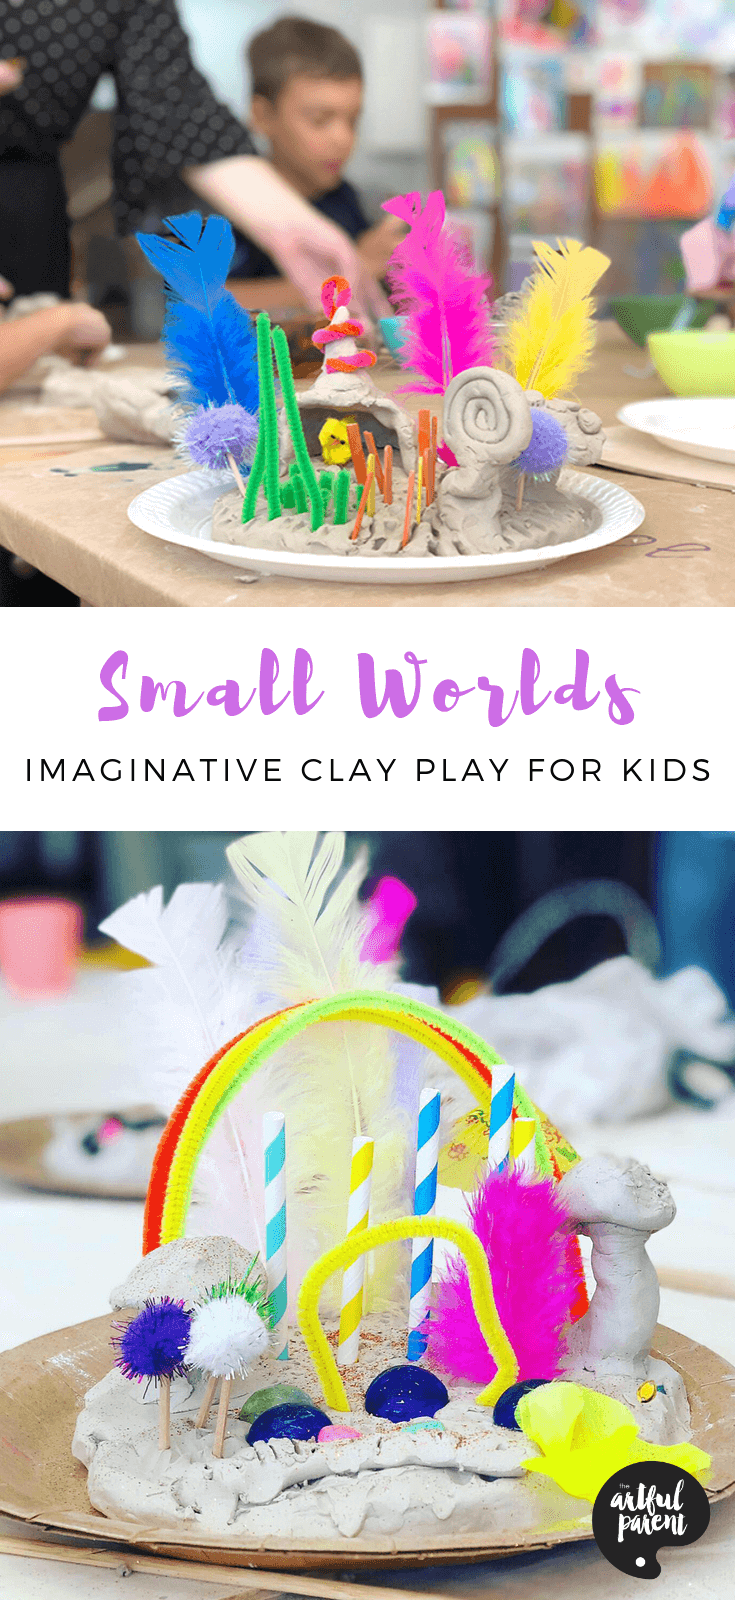 Try these Creative Small World Play Ideas for Kids